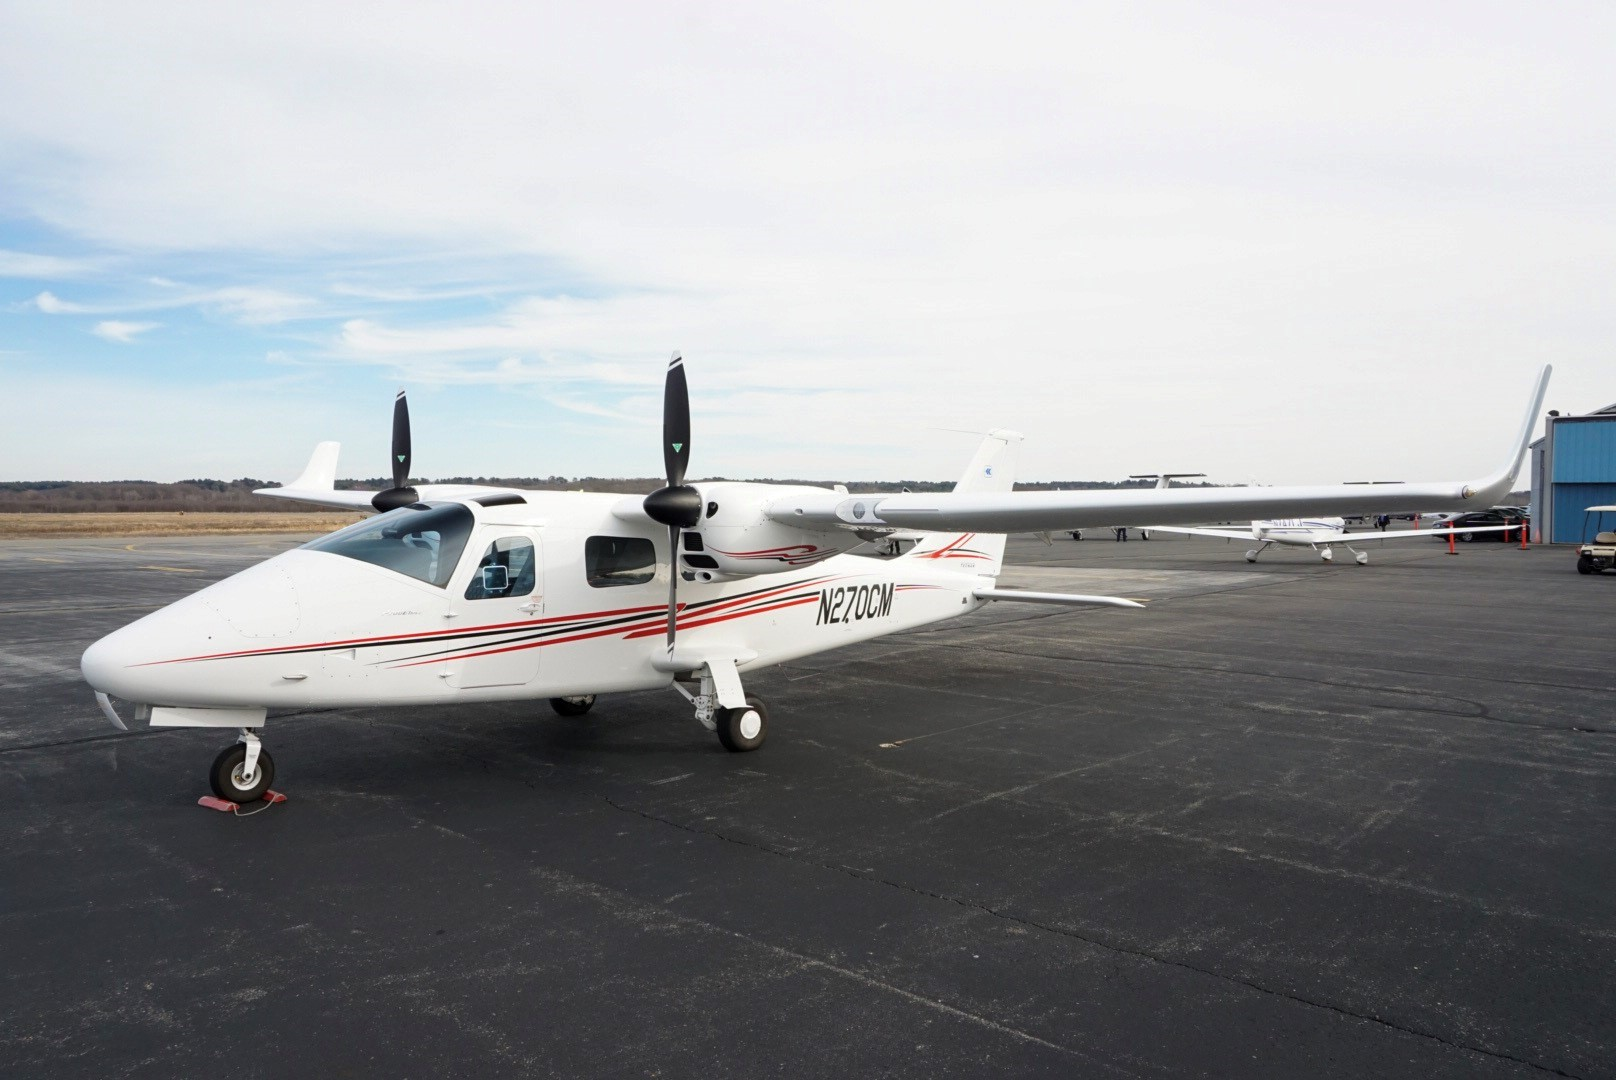 Aircraft Listing - Tecnam P2006T listed for sale